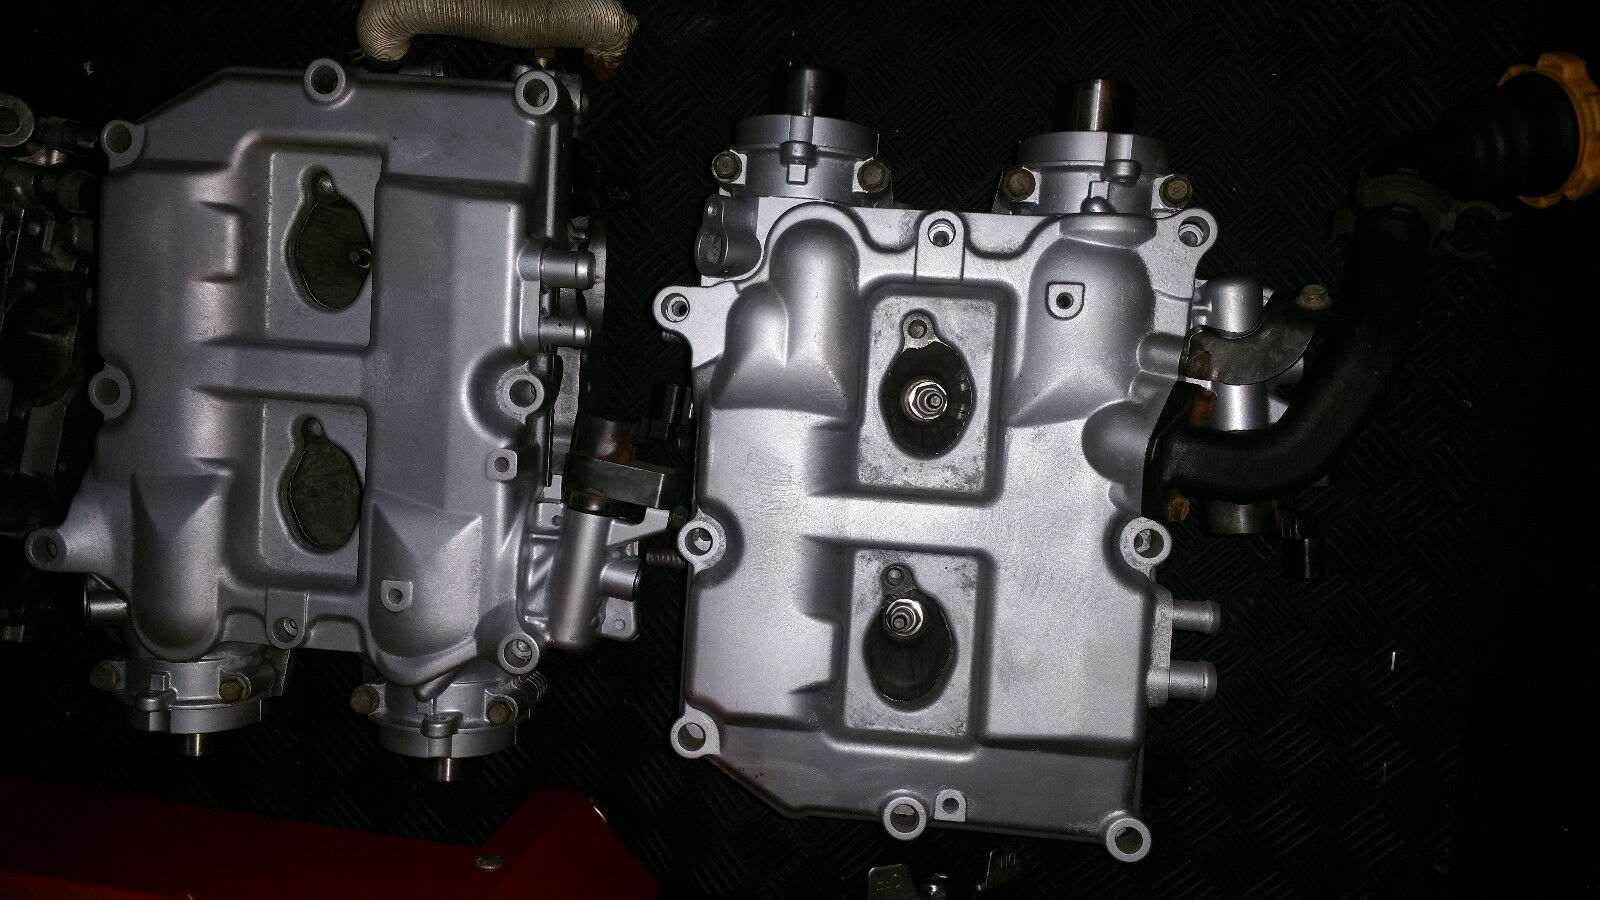 Used Subaru Forester Engines and Components for Sale - Page 13